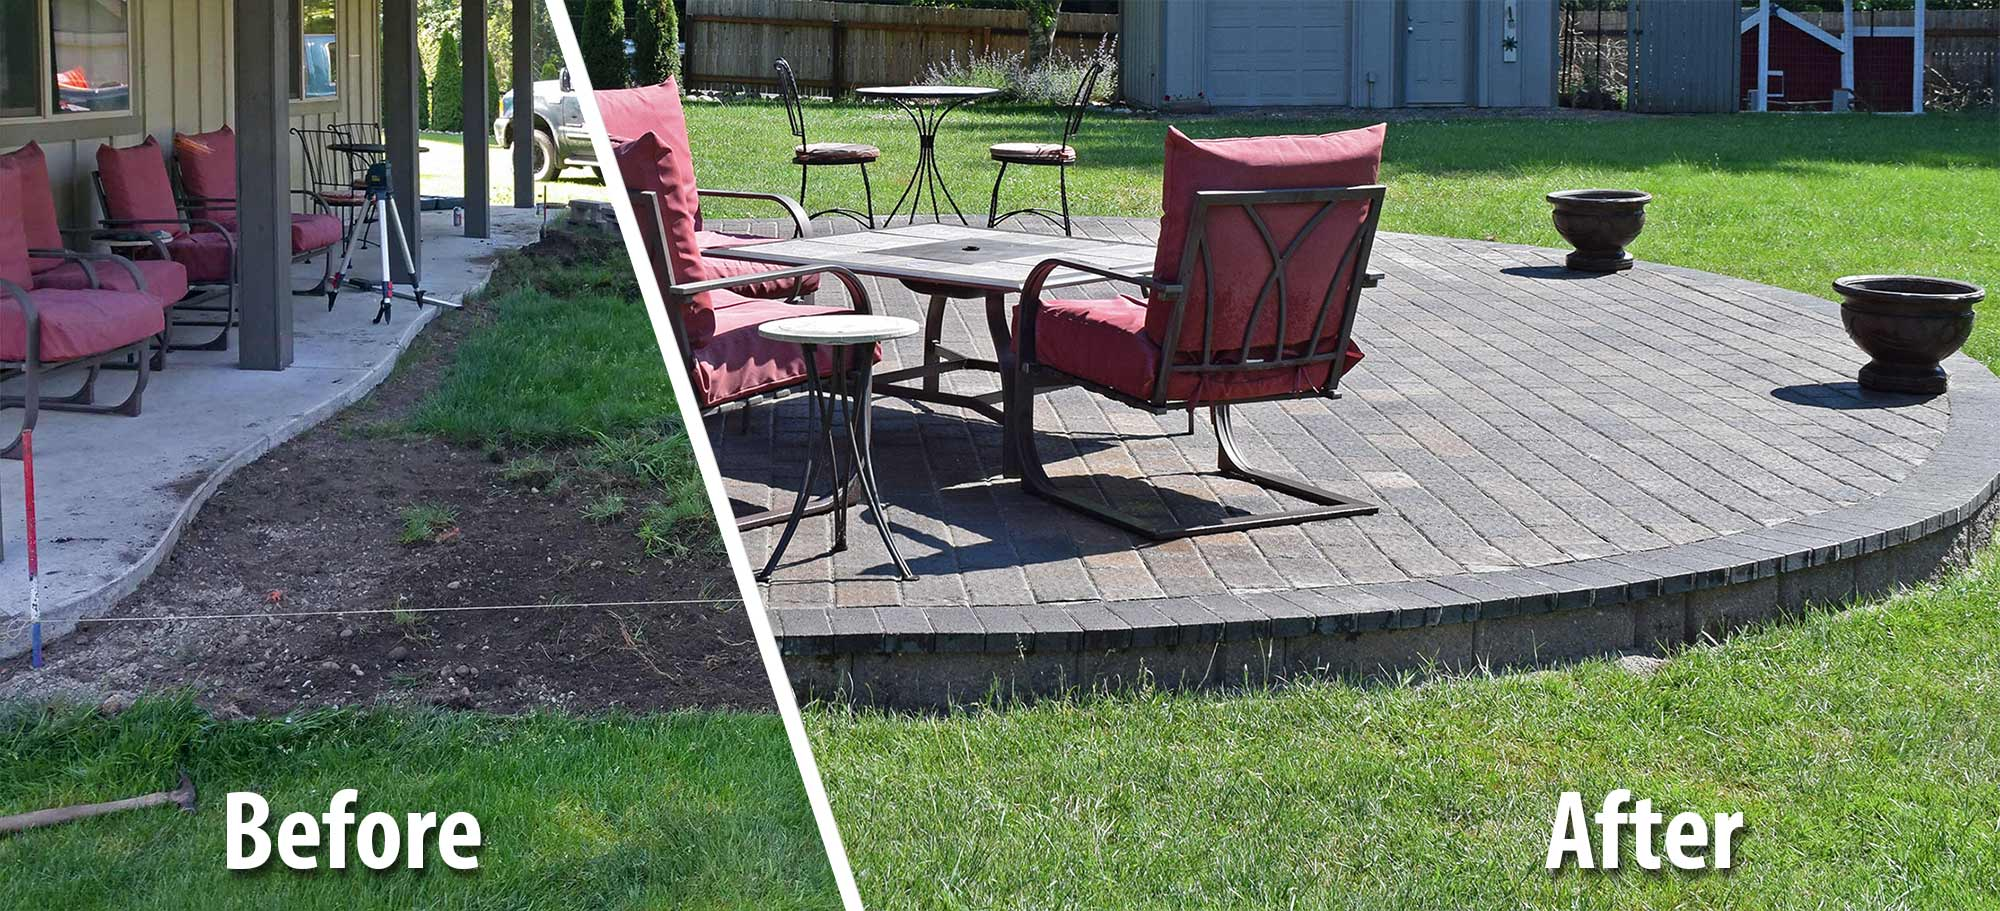 Before And After: Raised Paver Patio Before And After: Raised Paver Patio  ...